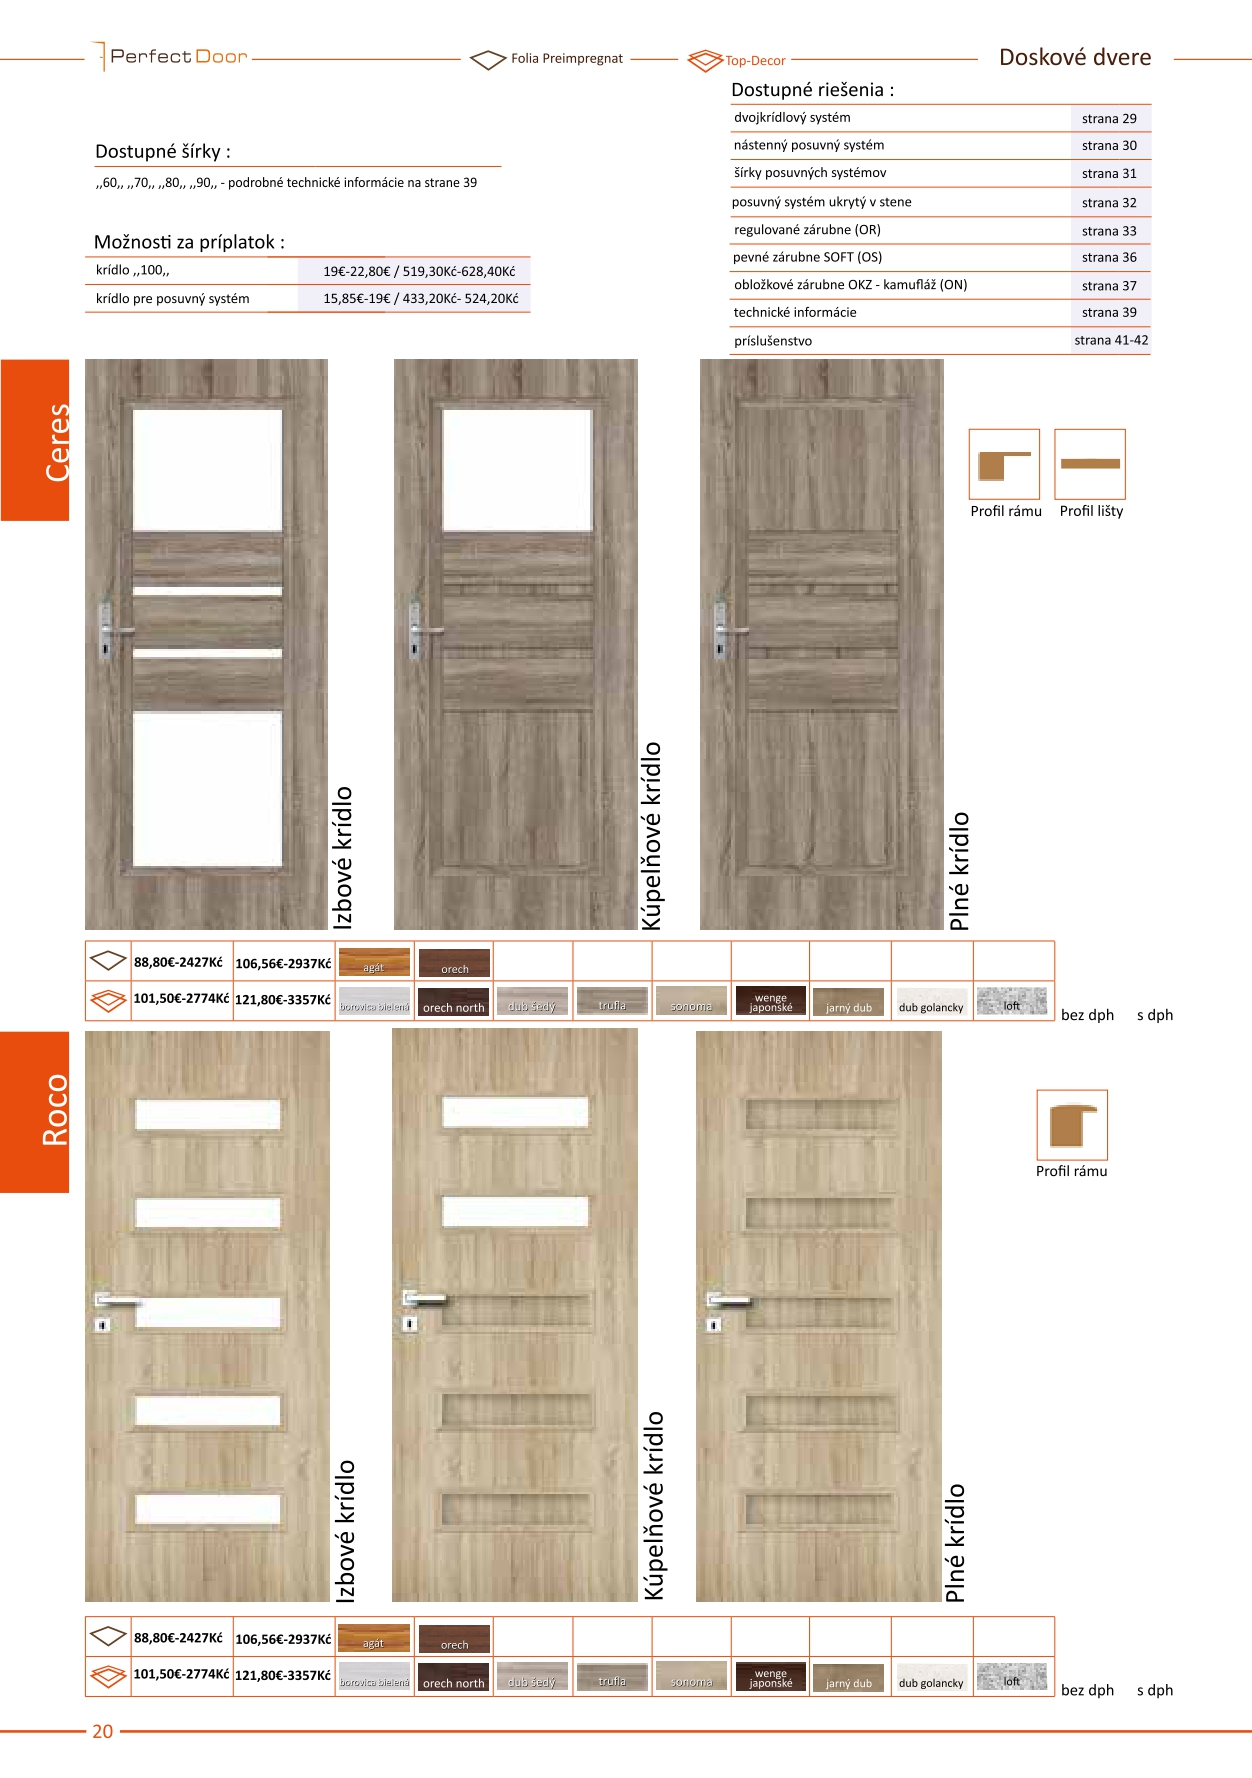 Perfectdoor katalog  1 2019 pages-to-jpg-0020